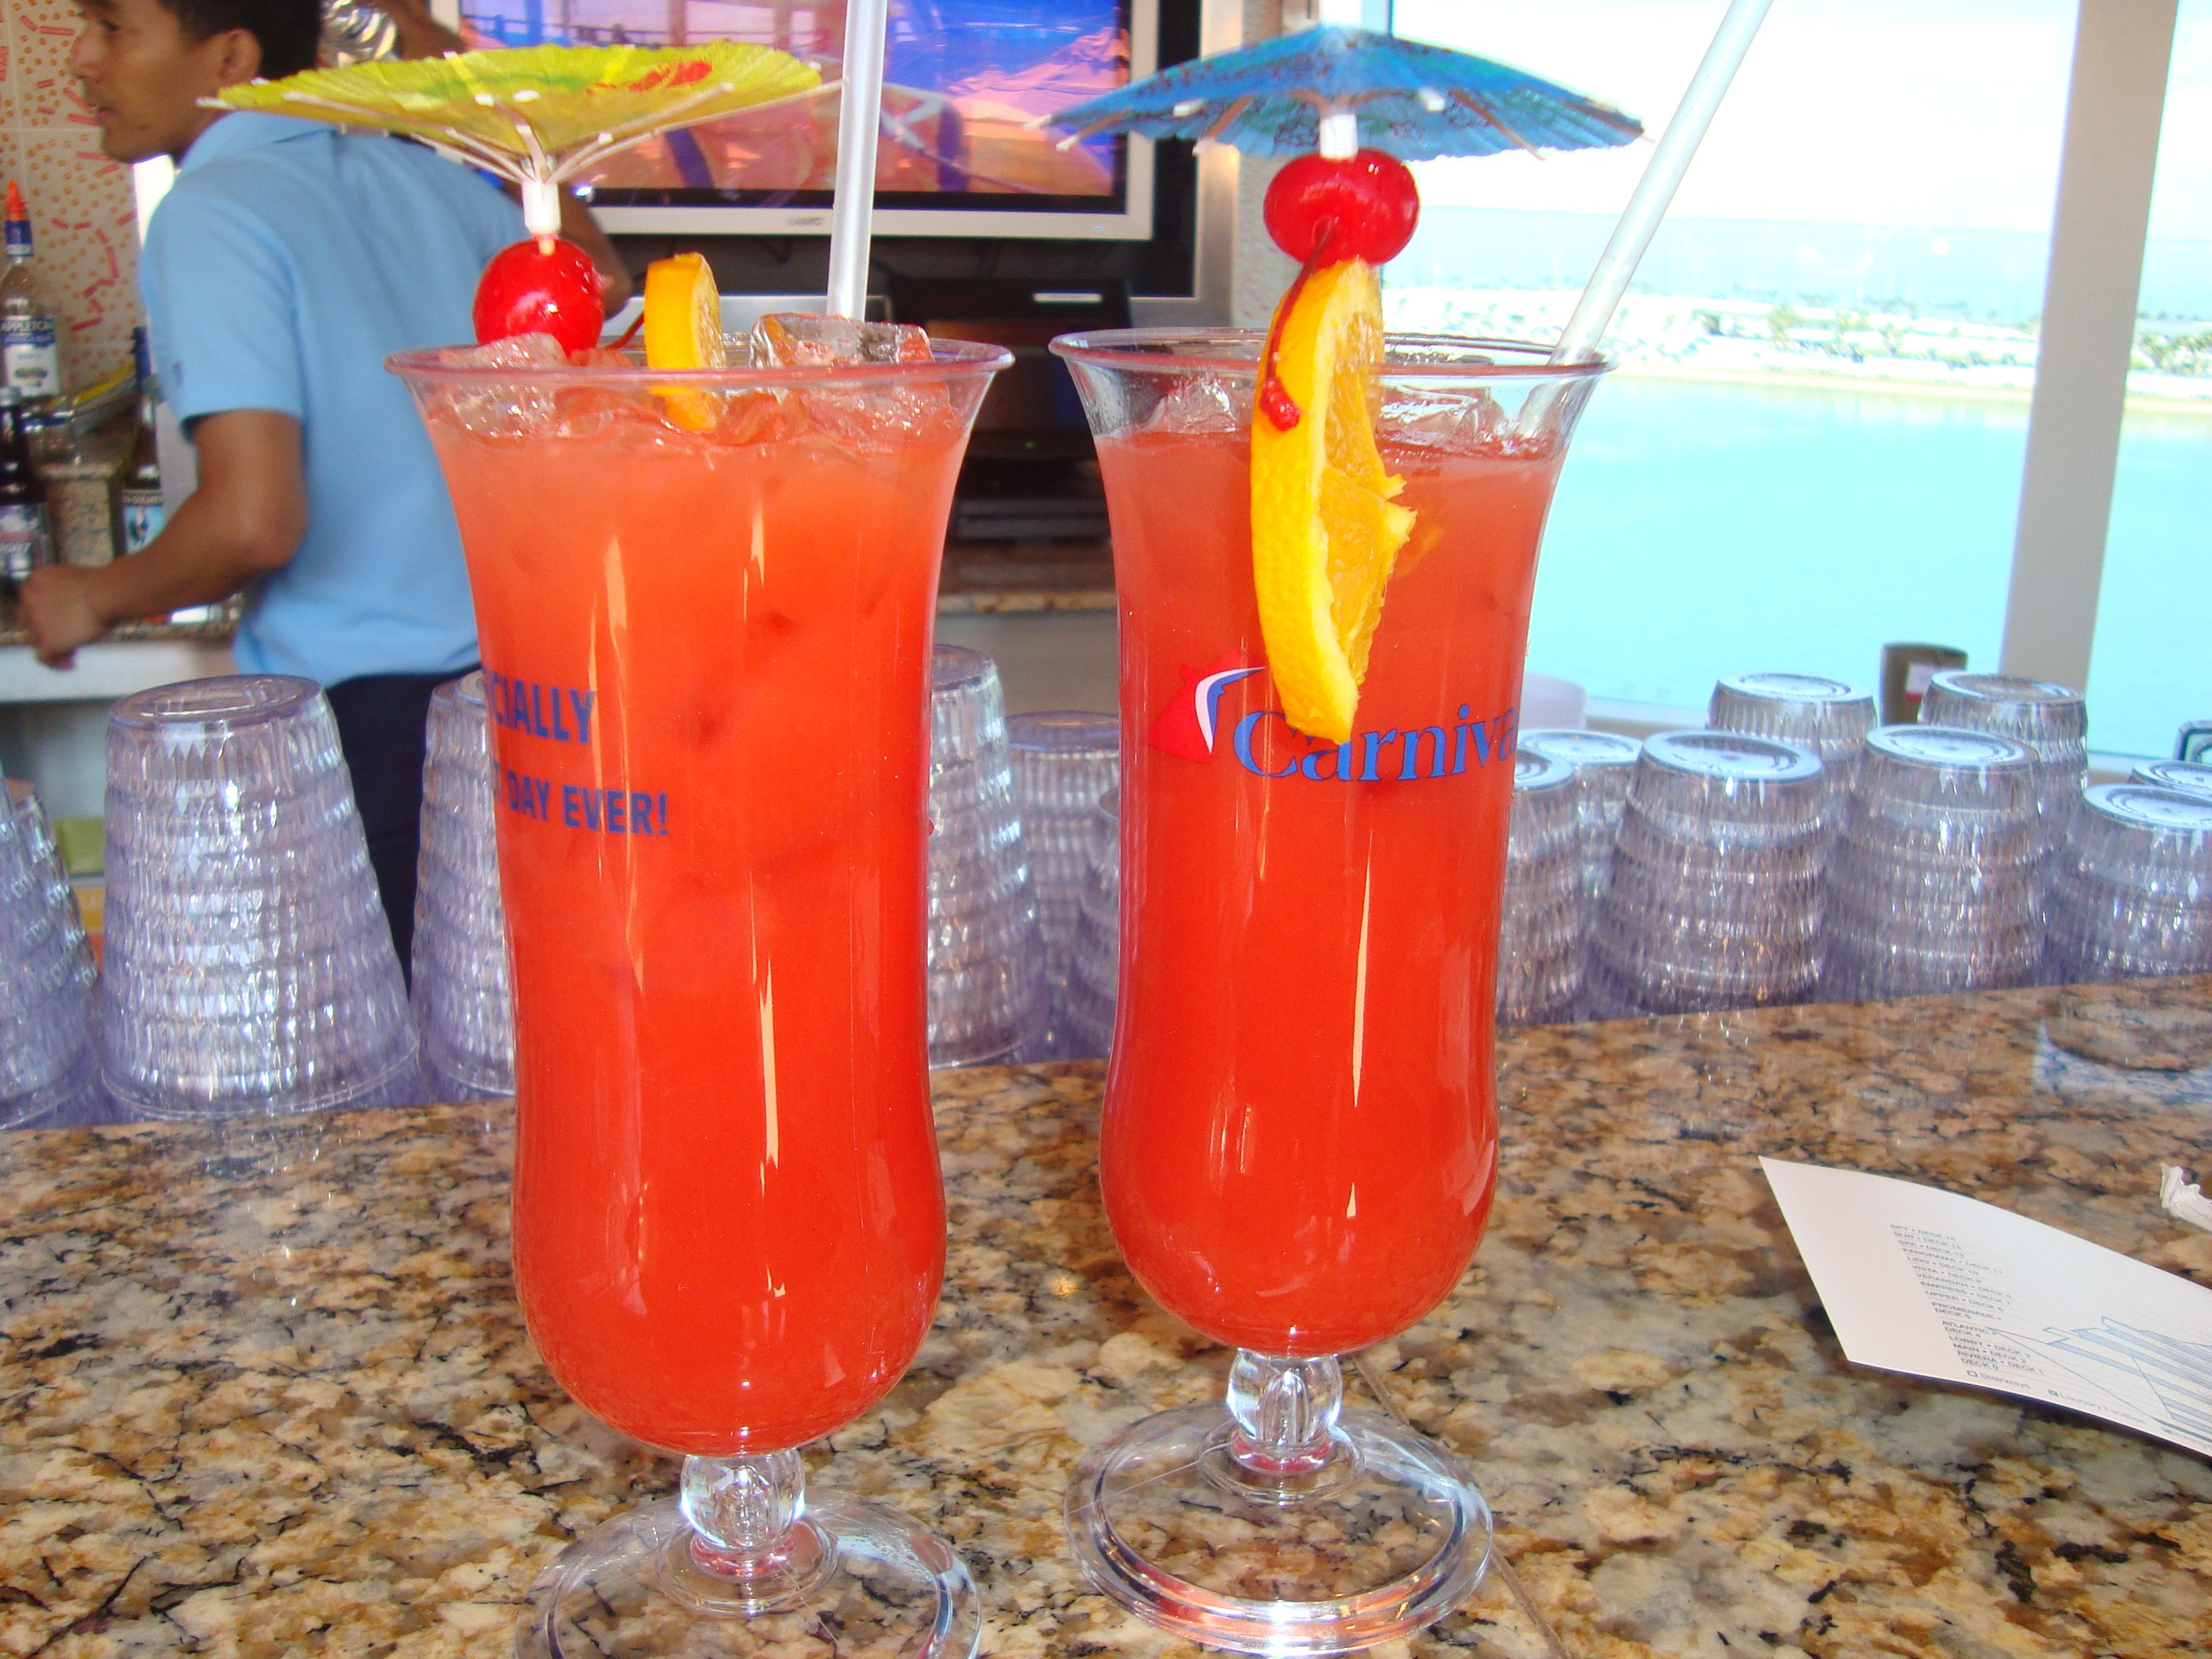 Cruise drink of the day | Yummy drinks, Drinks, Carnival glory